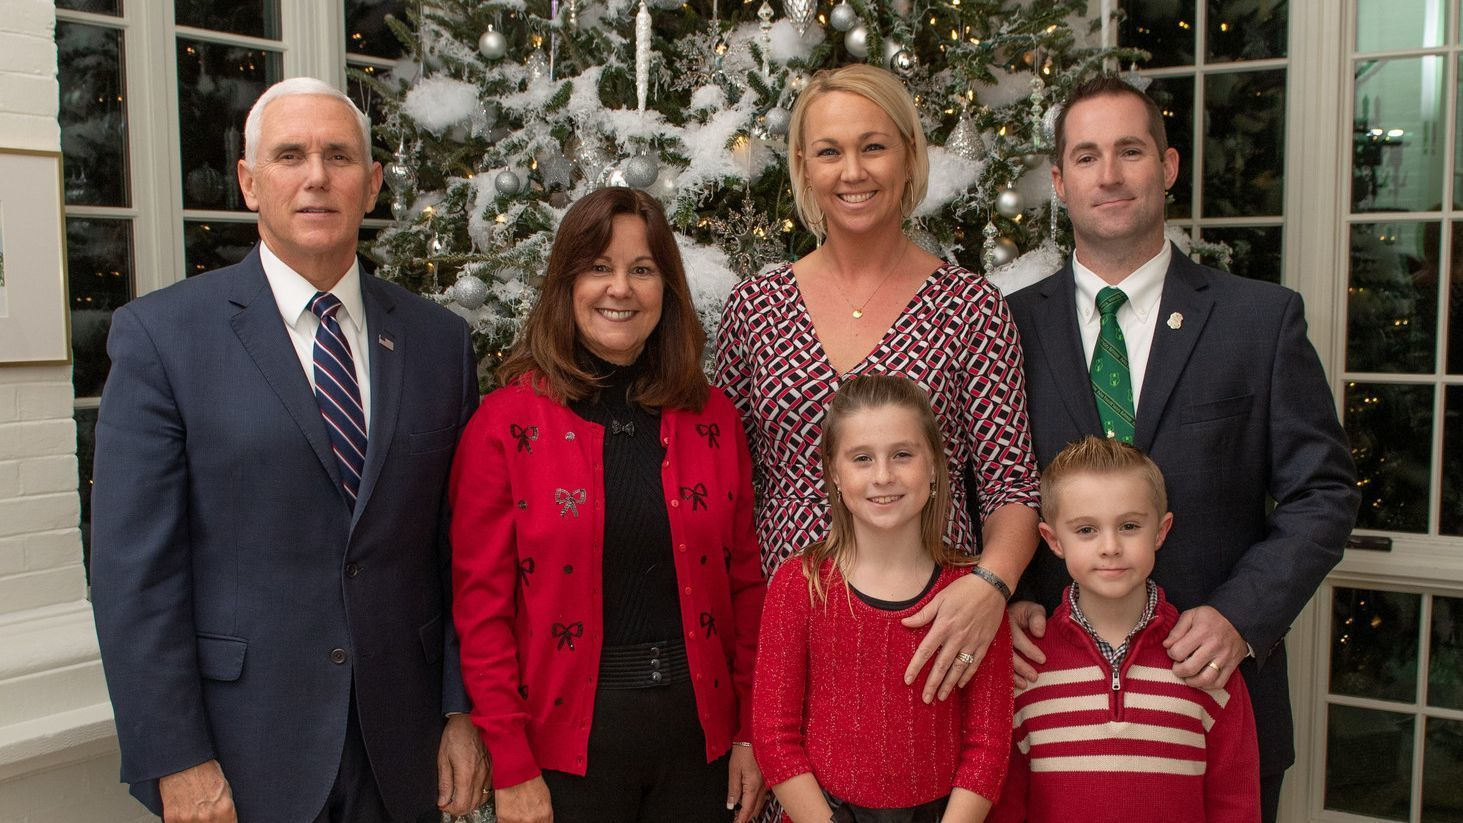 Vice President Mike Pence spends evening with Bel Air family